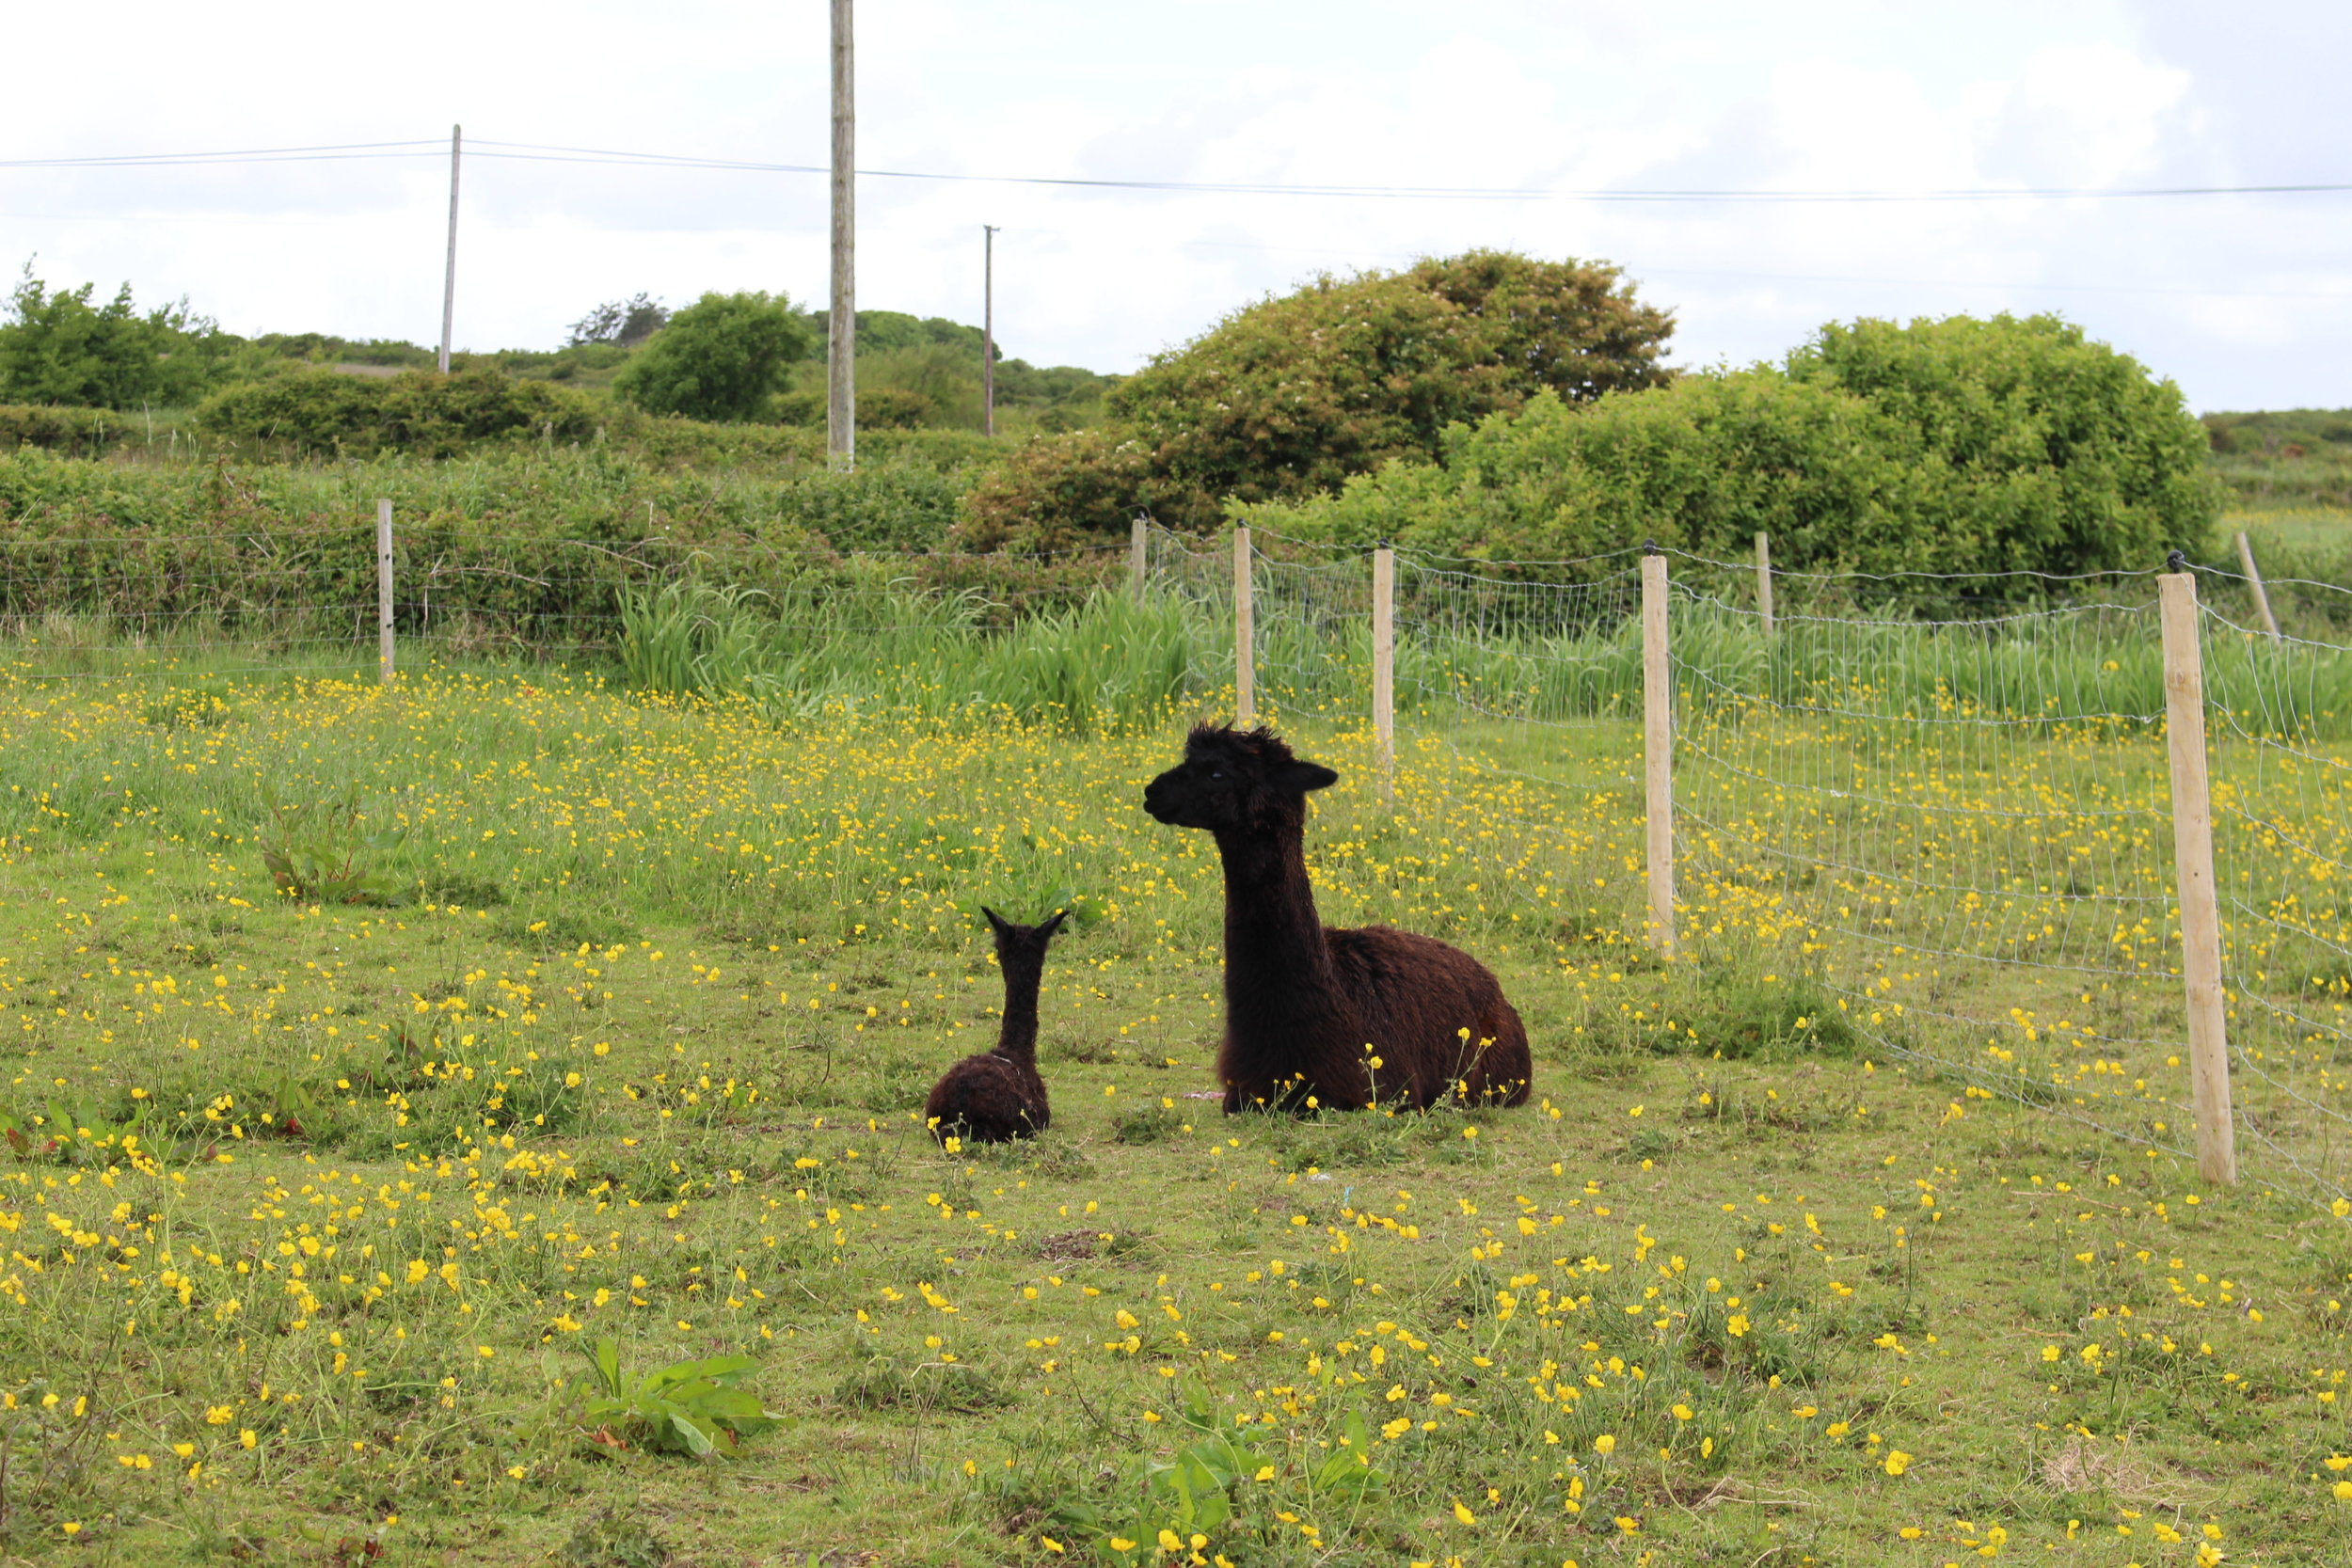 Avatar 'Nina' and her cria Nera Bellezza (Black Beauty) 'Bella' we call her